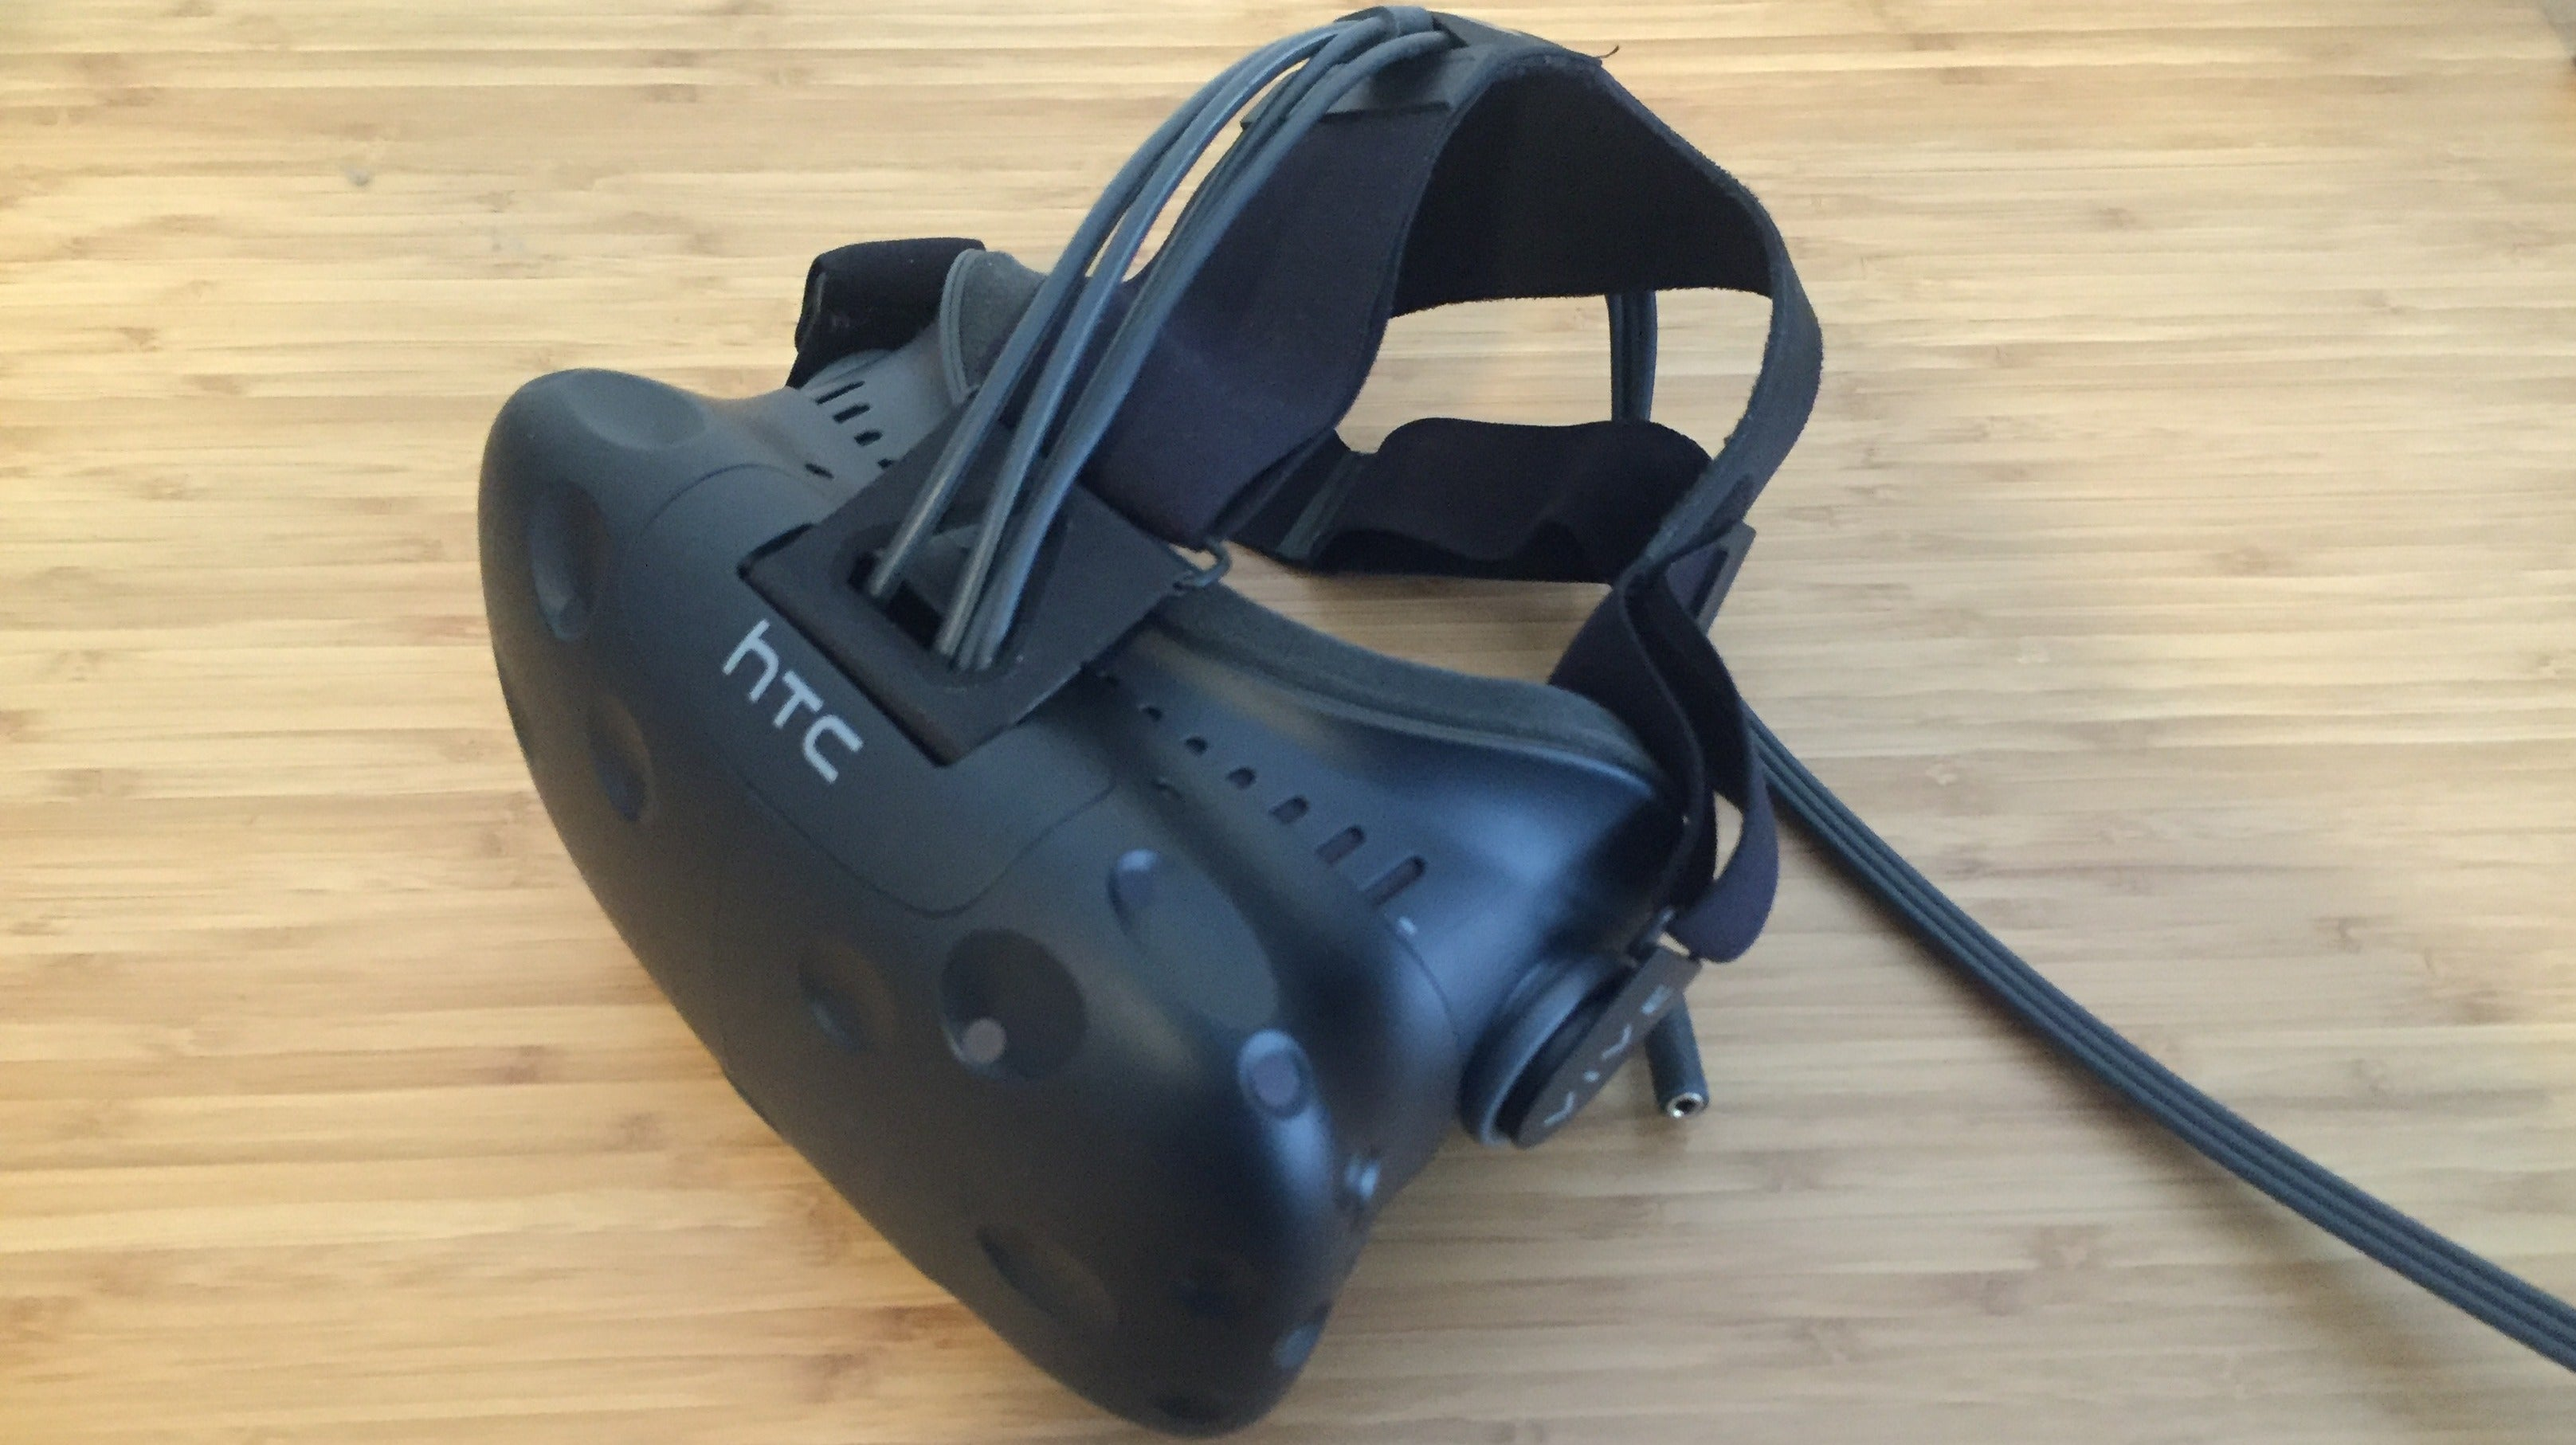 HTC Vive vs. Oculus Rift: The Comparison We Had To Make